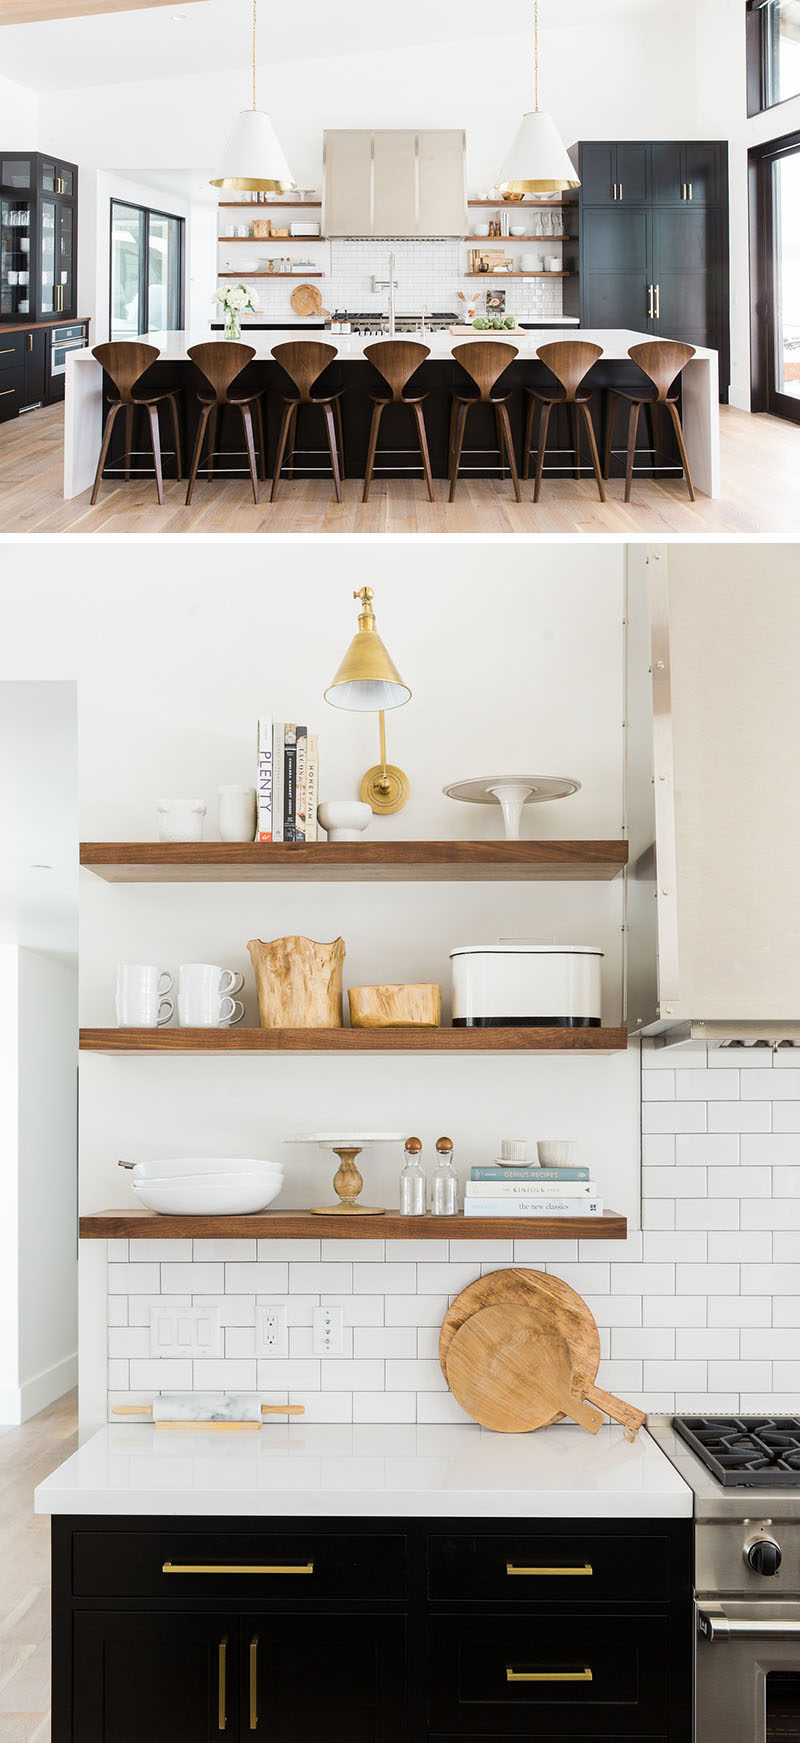 Kitchen design idea 19 examples of open shelving for Kitchen shelves design